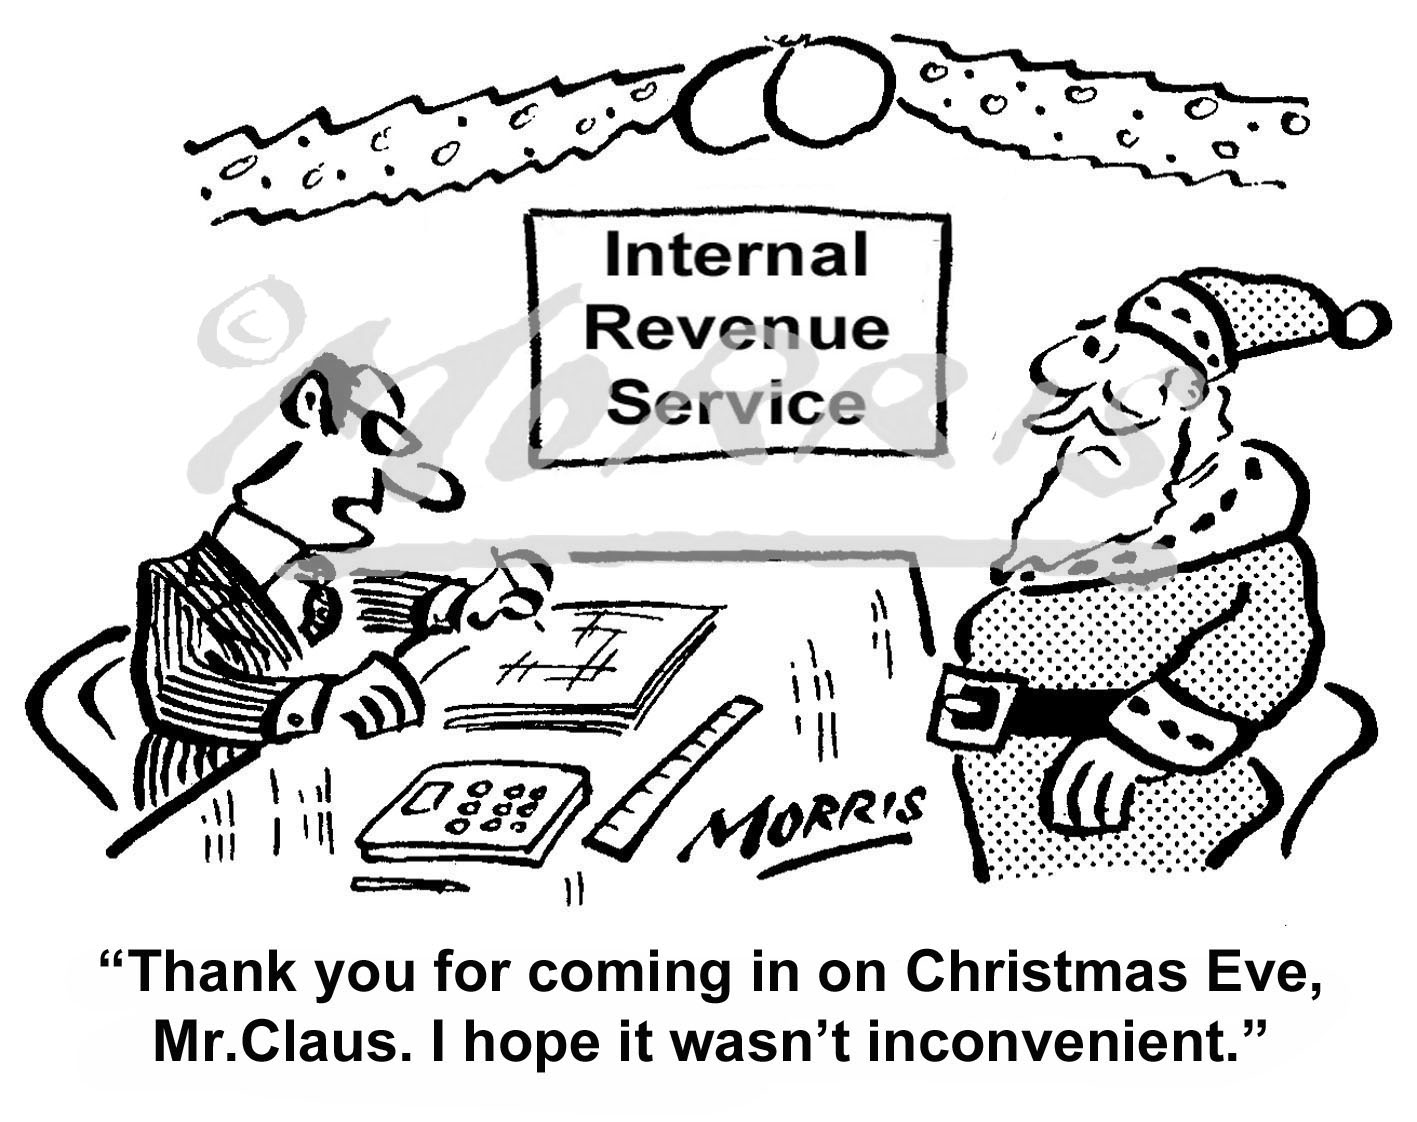 Funny IRS cartoon, Christmas cartoon and Christmas vacation comic cartoon – Ref: 3859bwus